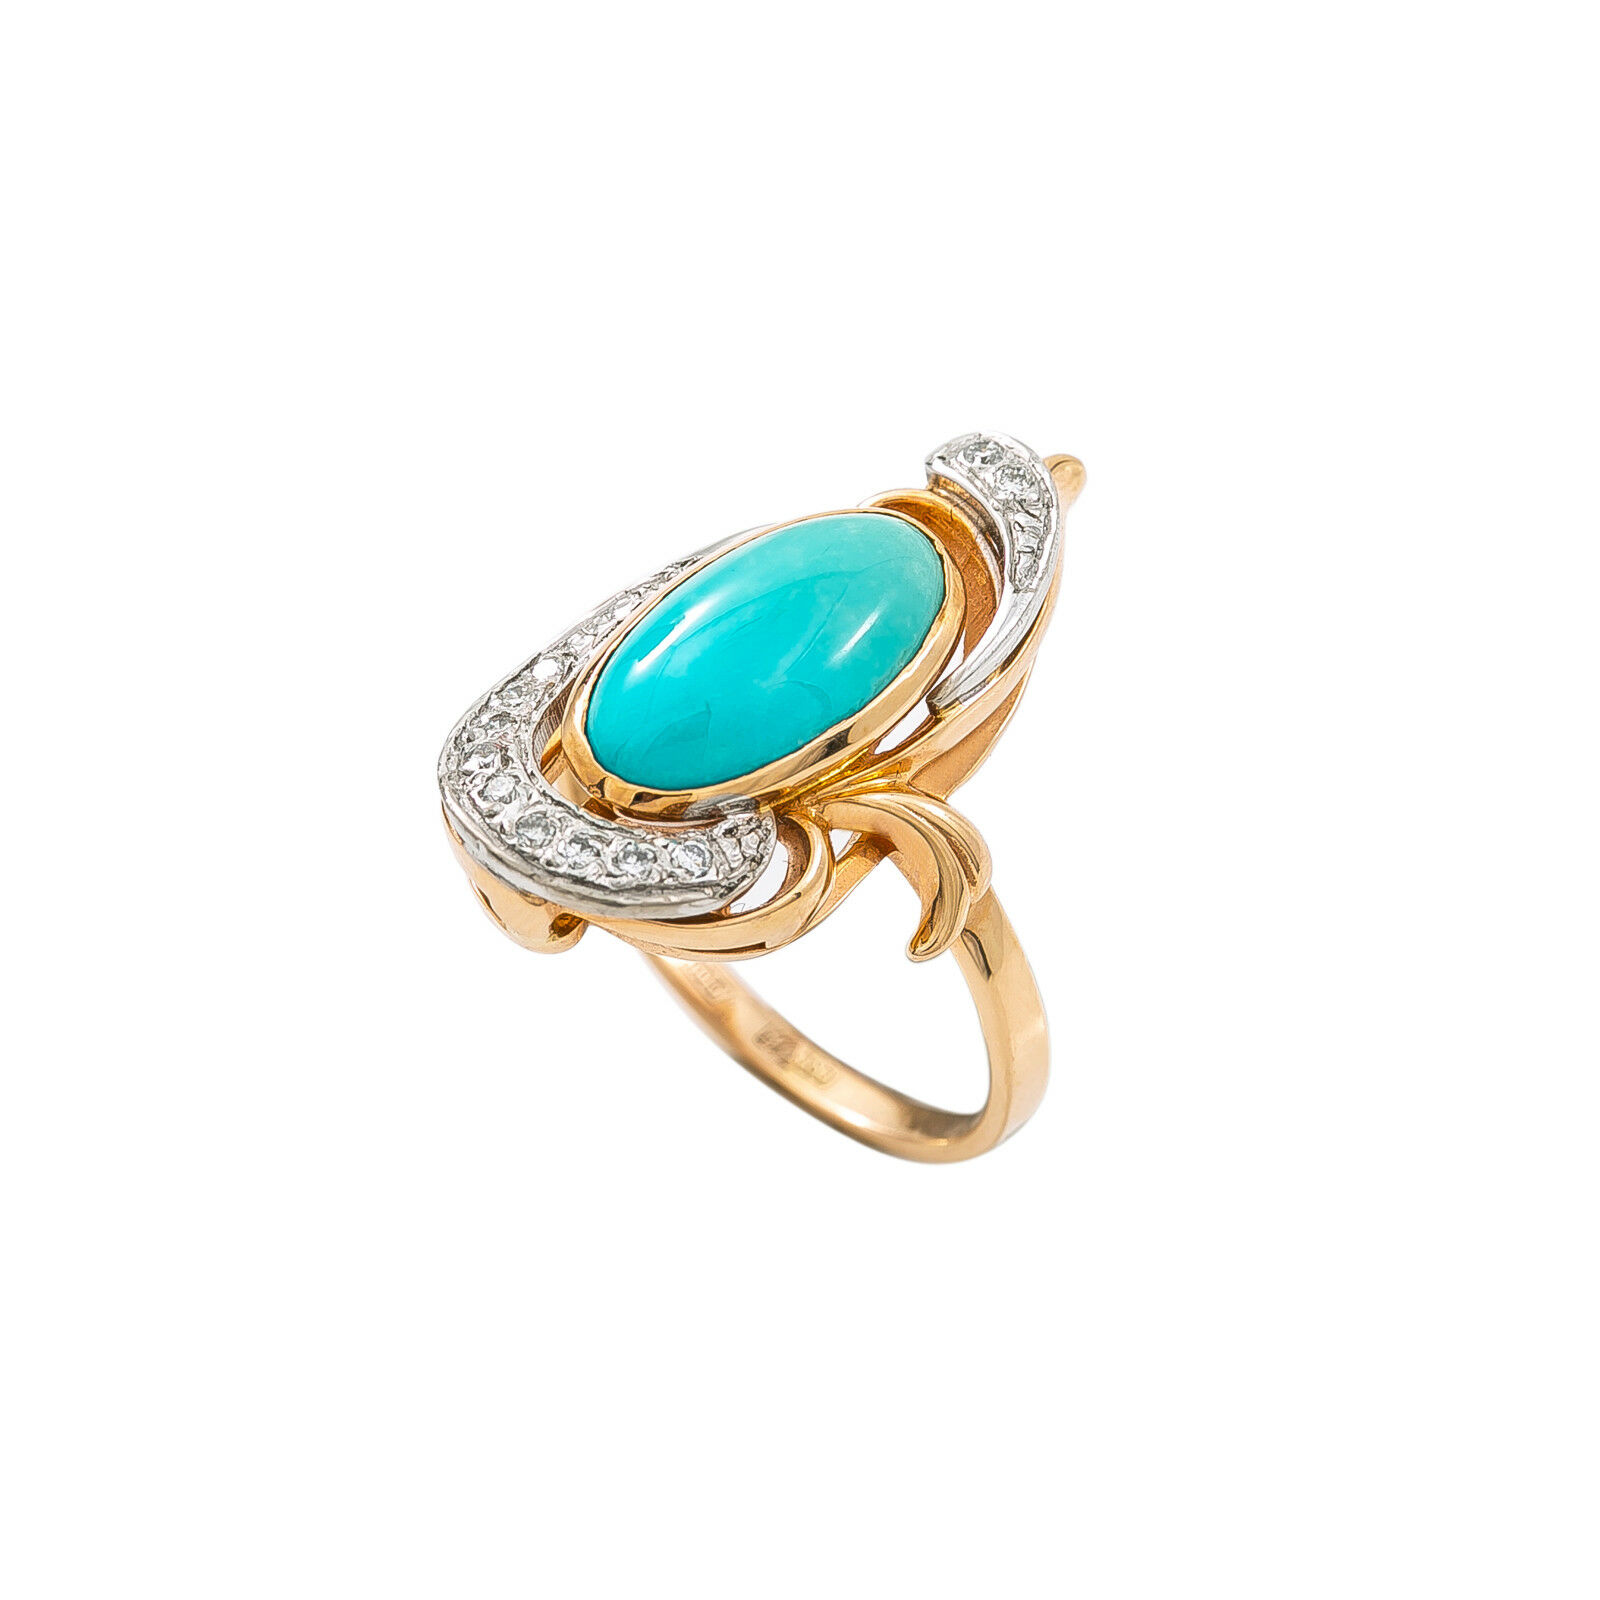 14K Two Tone pink gold 0.11 Ct Diamond Turquoise Ring 6.3 Grams Size 7.75